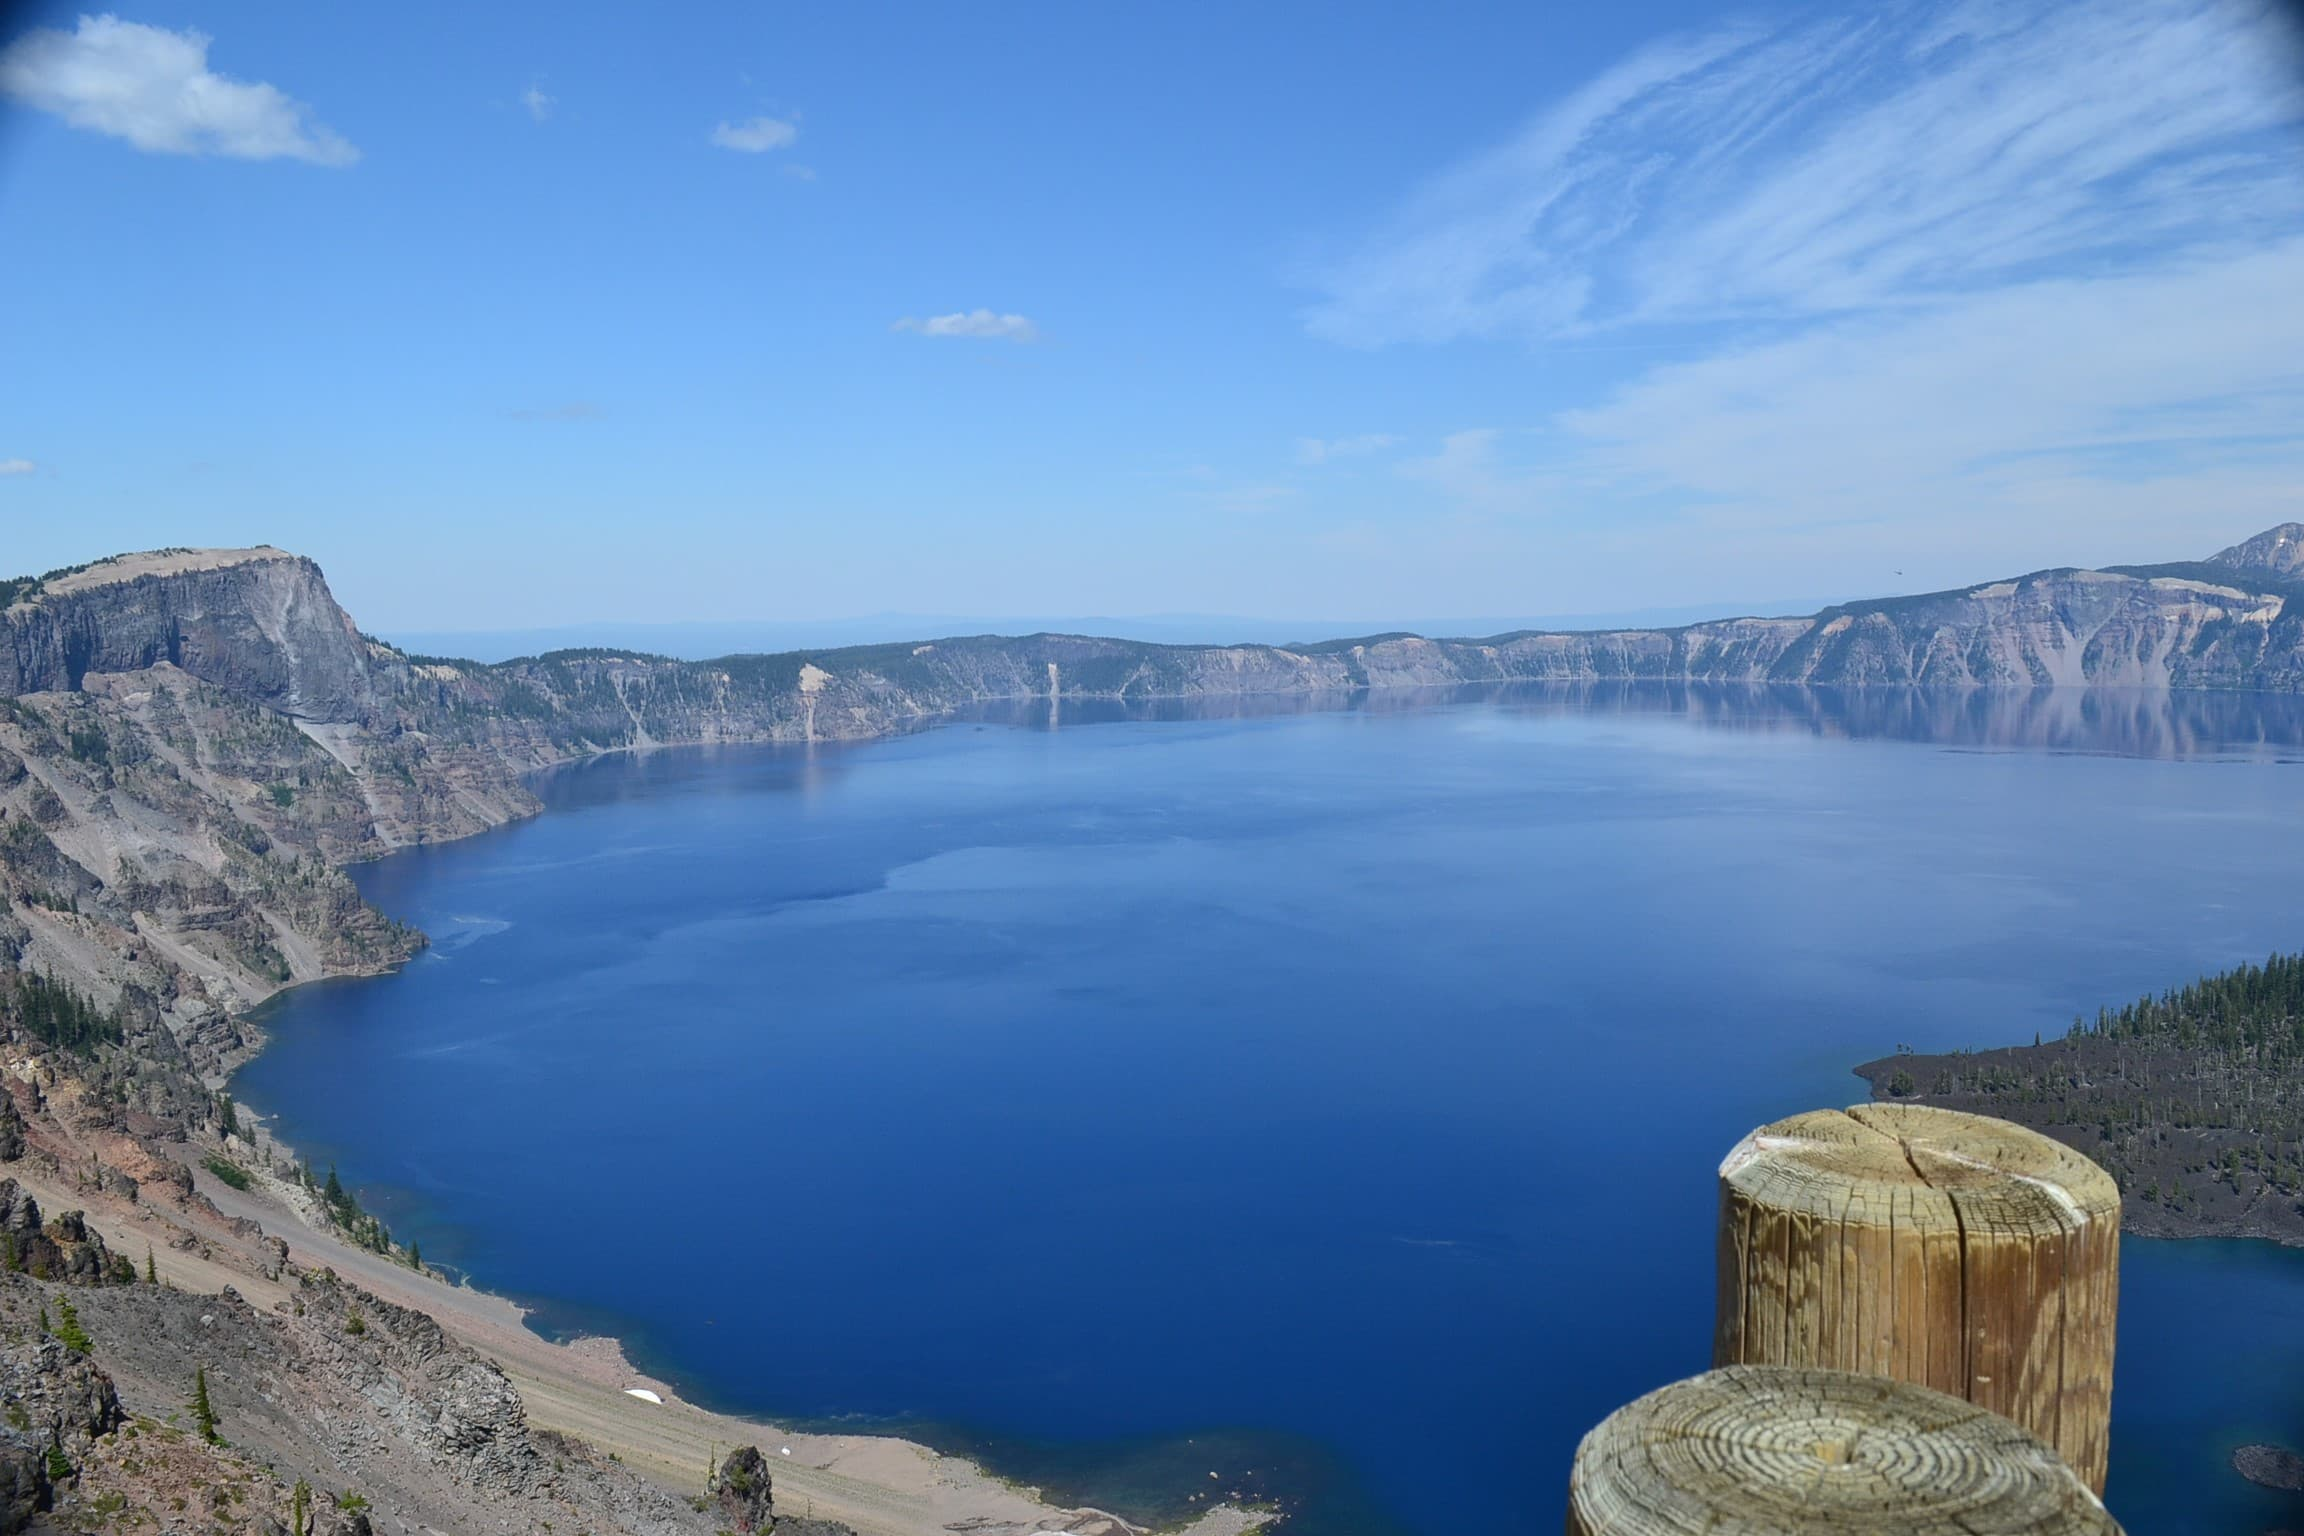 View left side of Crater Lake.